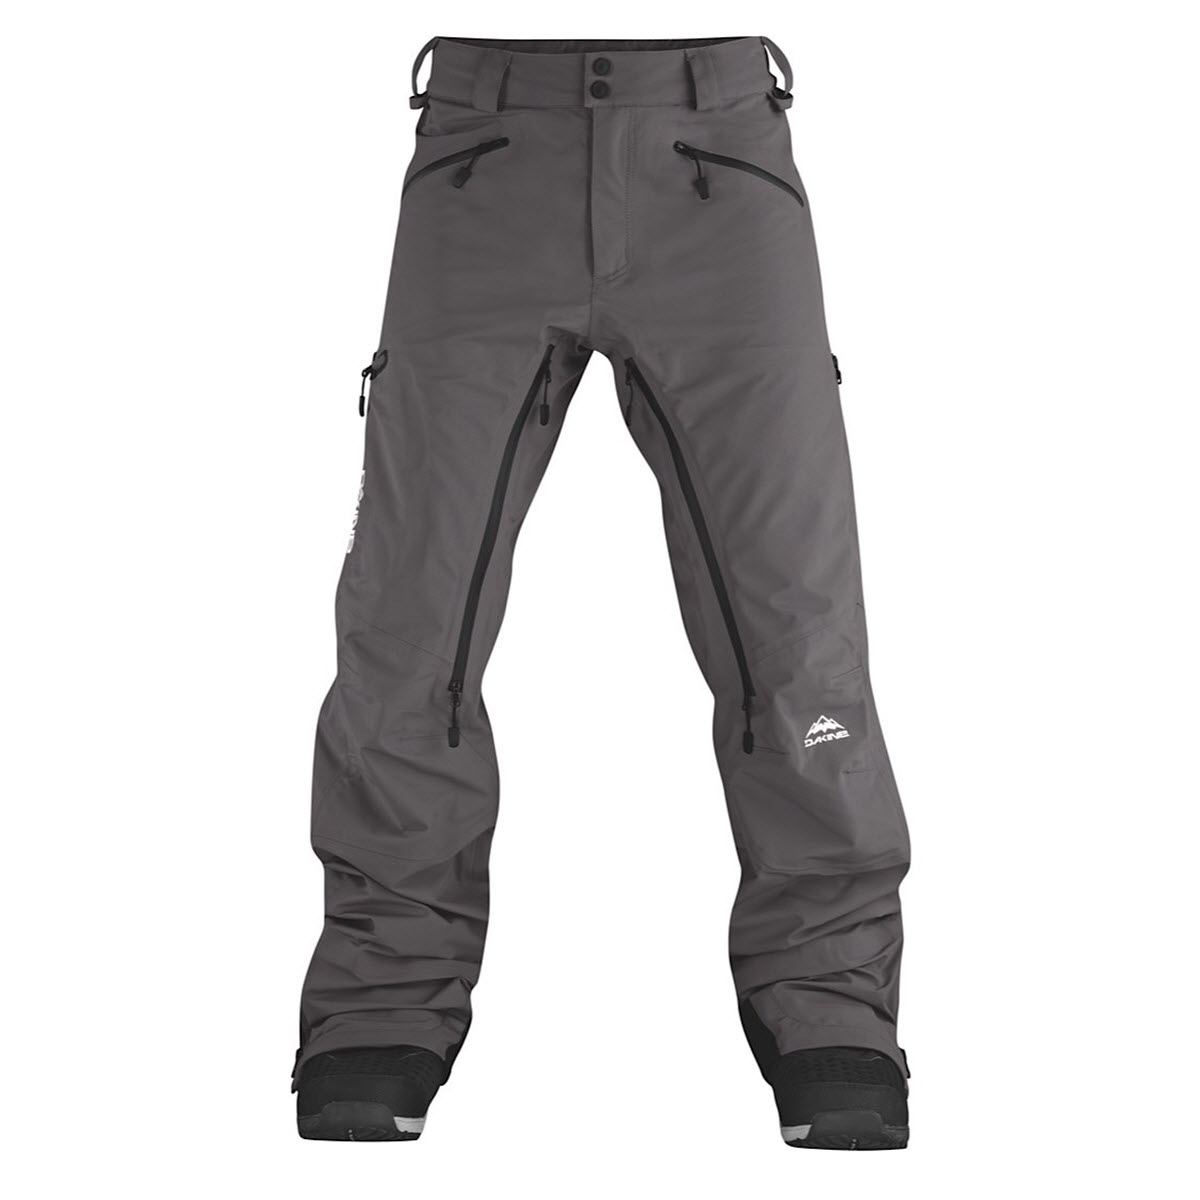 Dakine Mens Shifter Snowboard Pants 2014 Charcoal Medium